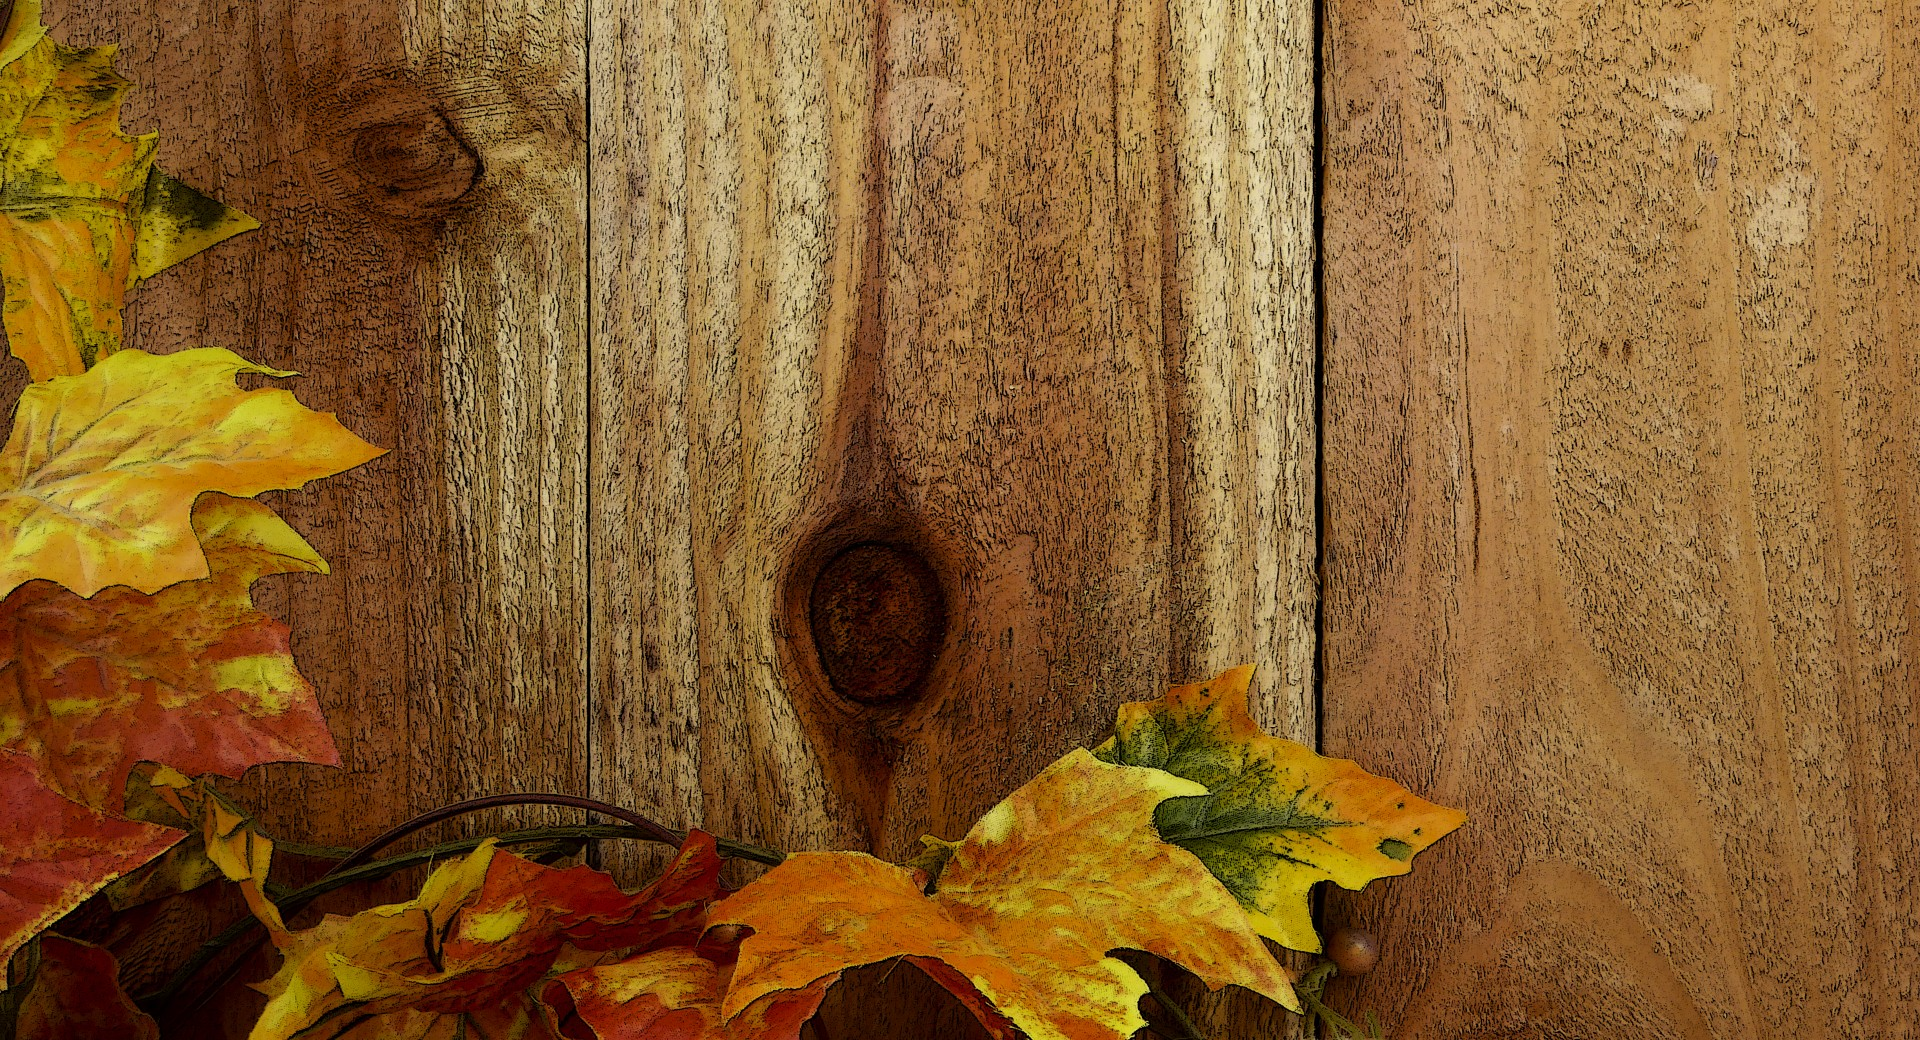 Wood Fence & Fall Leaves Background Free Stock Photo - Public Domain ...